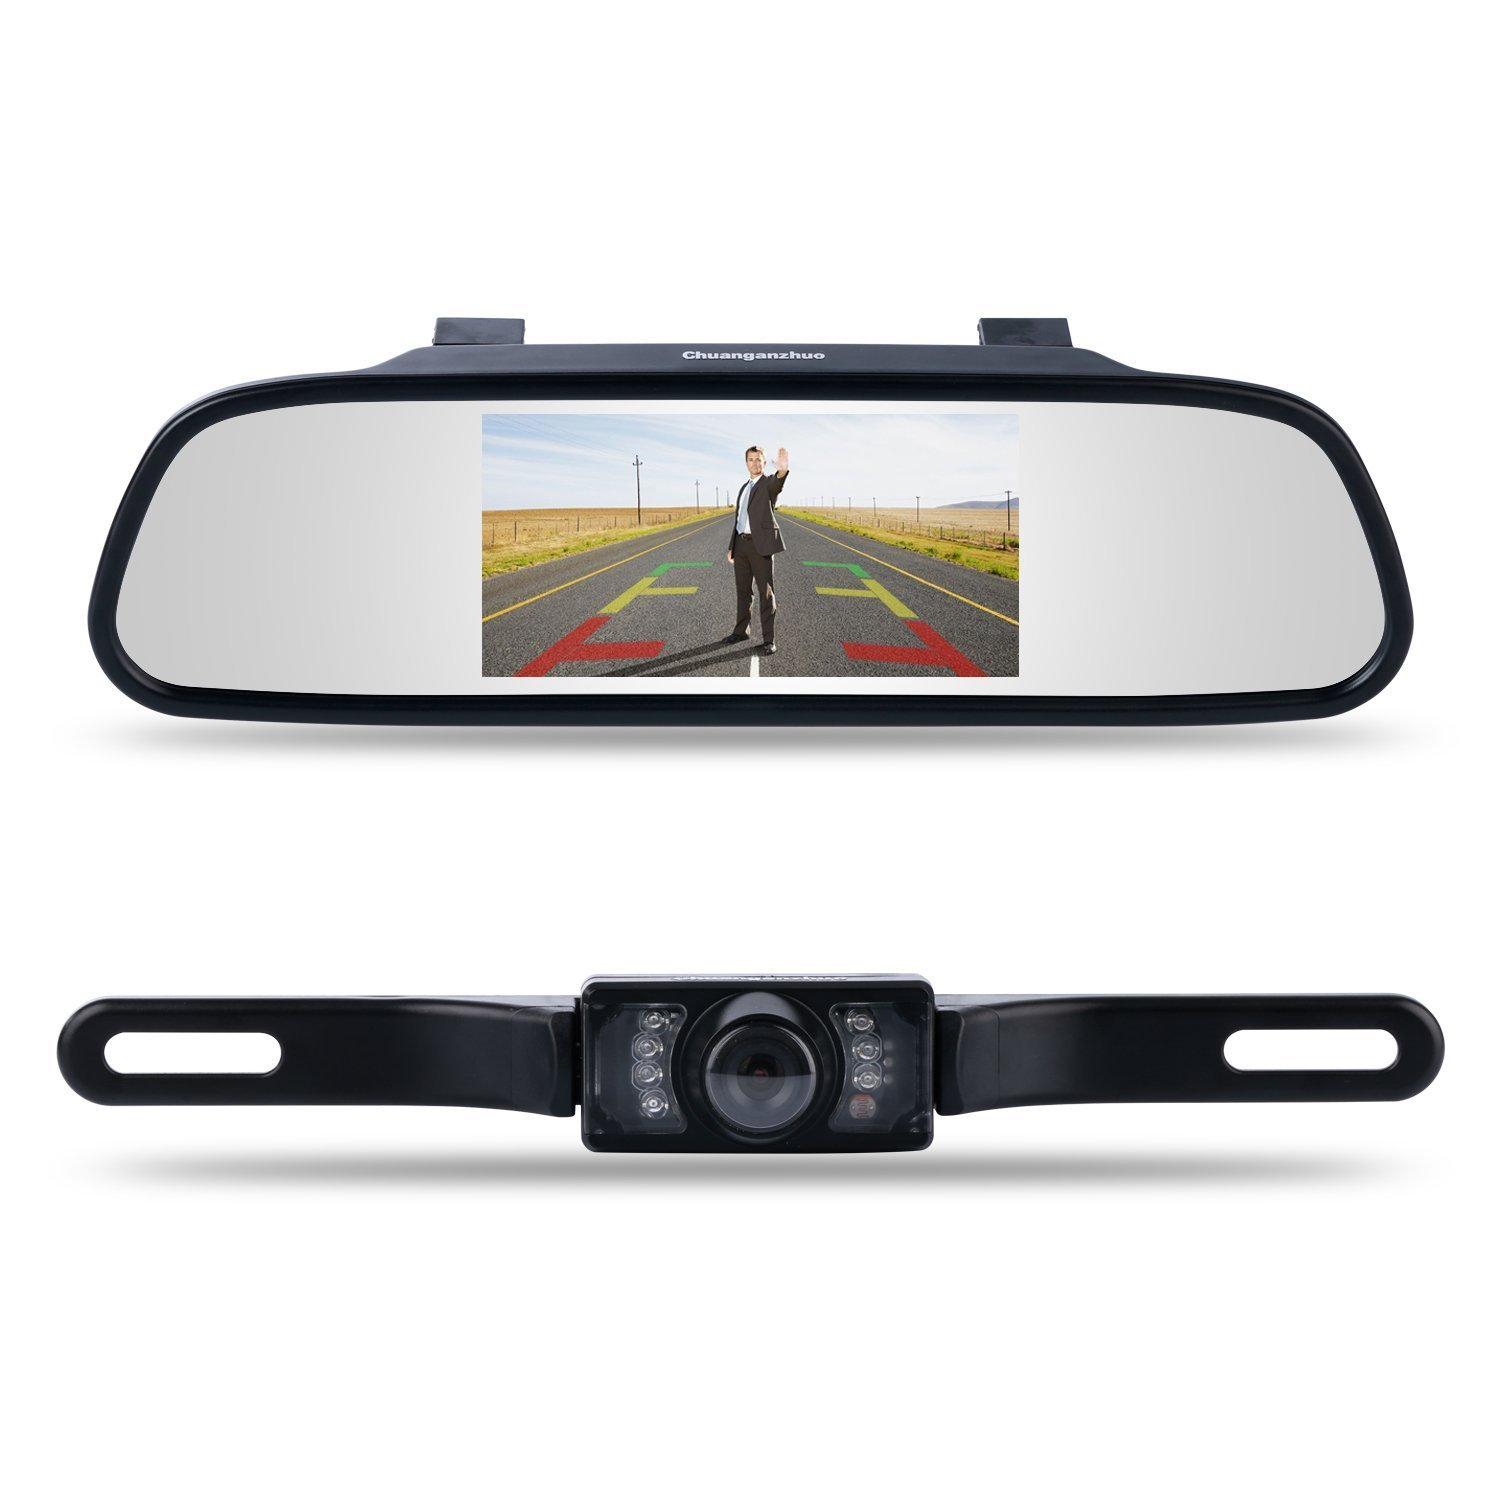 Backup Camera and Monitor Kit,Chuanganzhuo 4.3'' Car Vehicle Rearview Mirror Monitor for DVD/VCR/Car Reverse Camera + CMOS Rear-view License Plate Car Rear Backup Parking Camera With 7 LED Night Vision